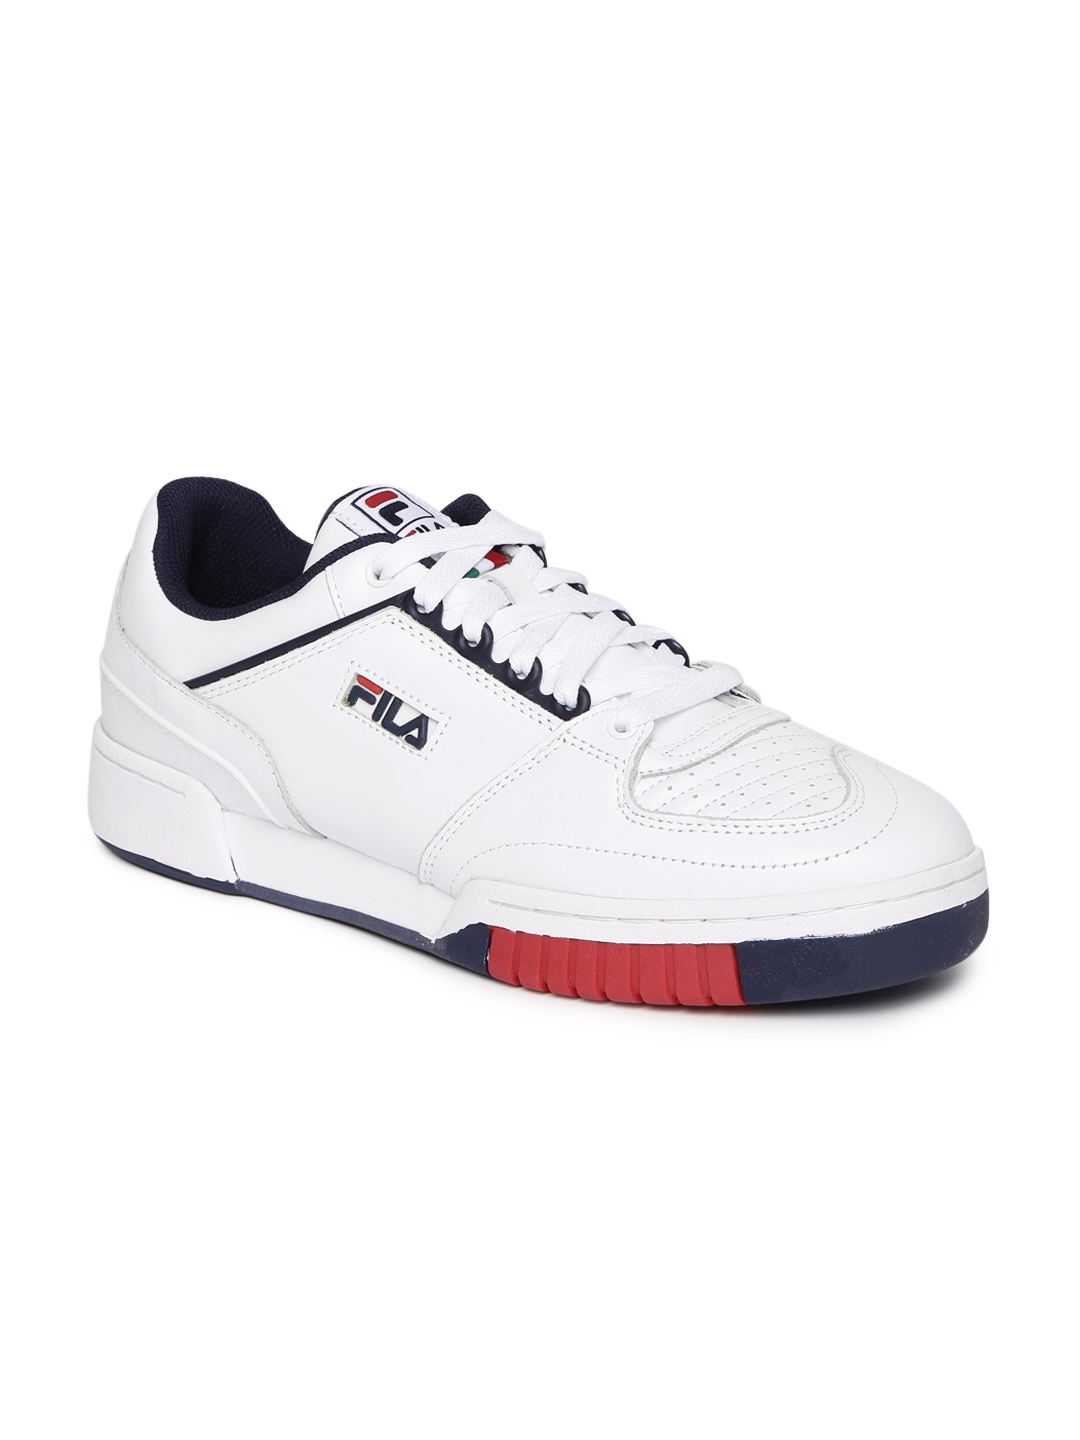 797ef304d3385d 11523450751683-FILA-Men-White-Solid-Leather-Mid-Top-Targa-Sneakers -1021523450751526-2.jpg